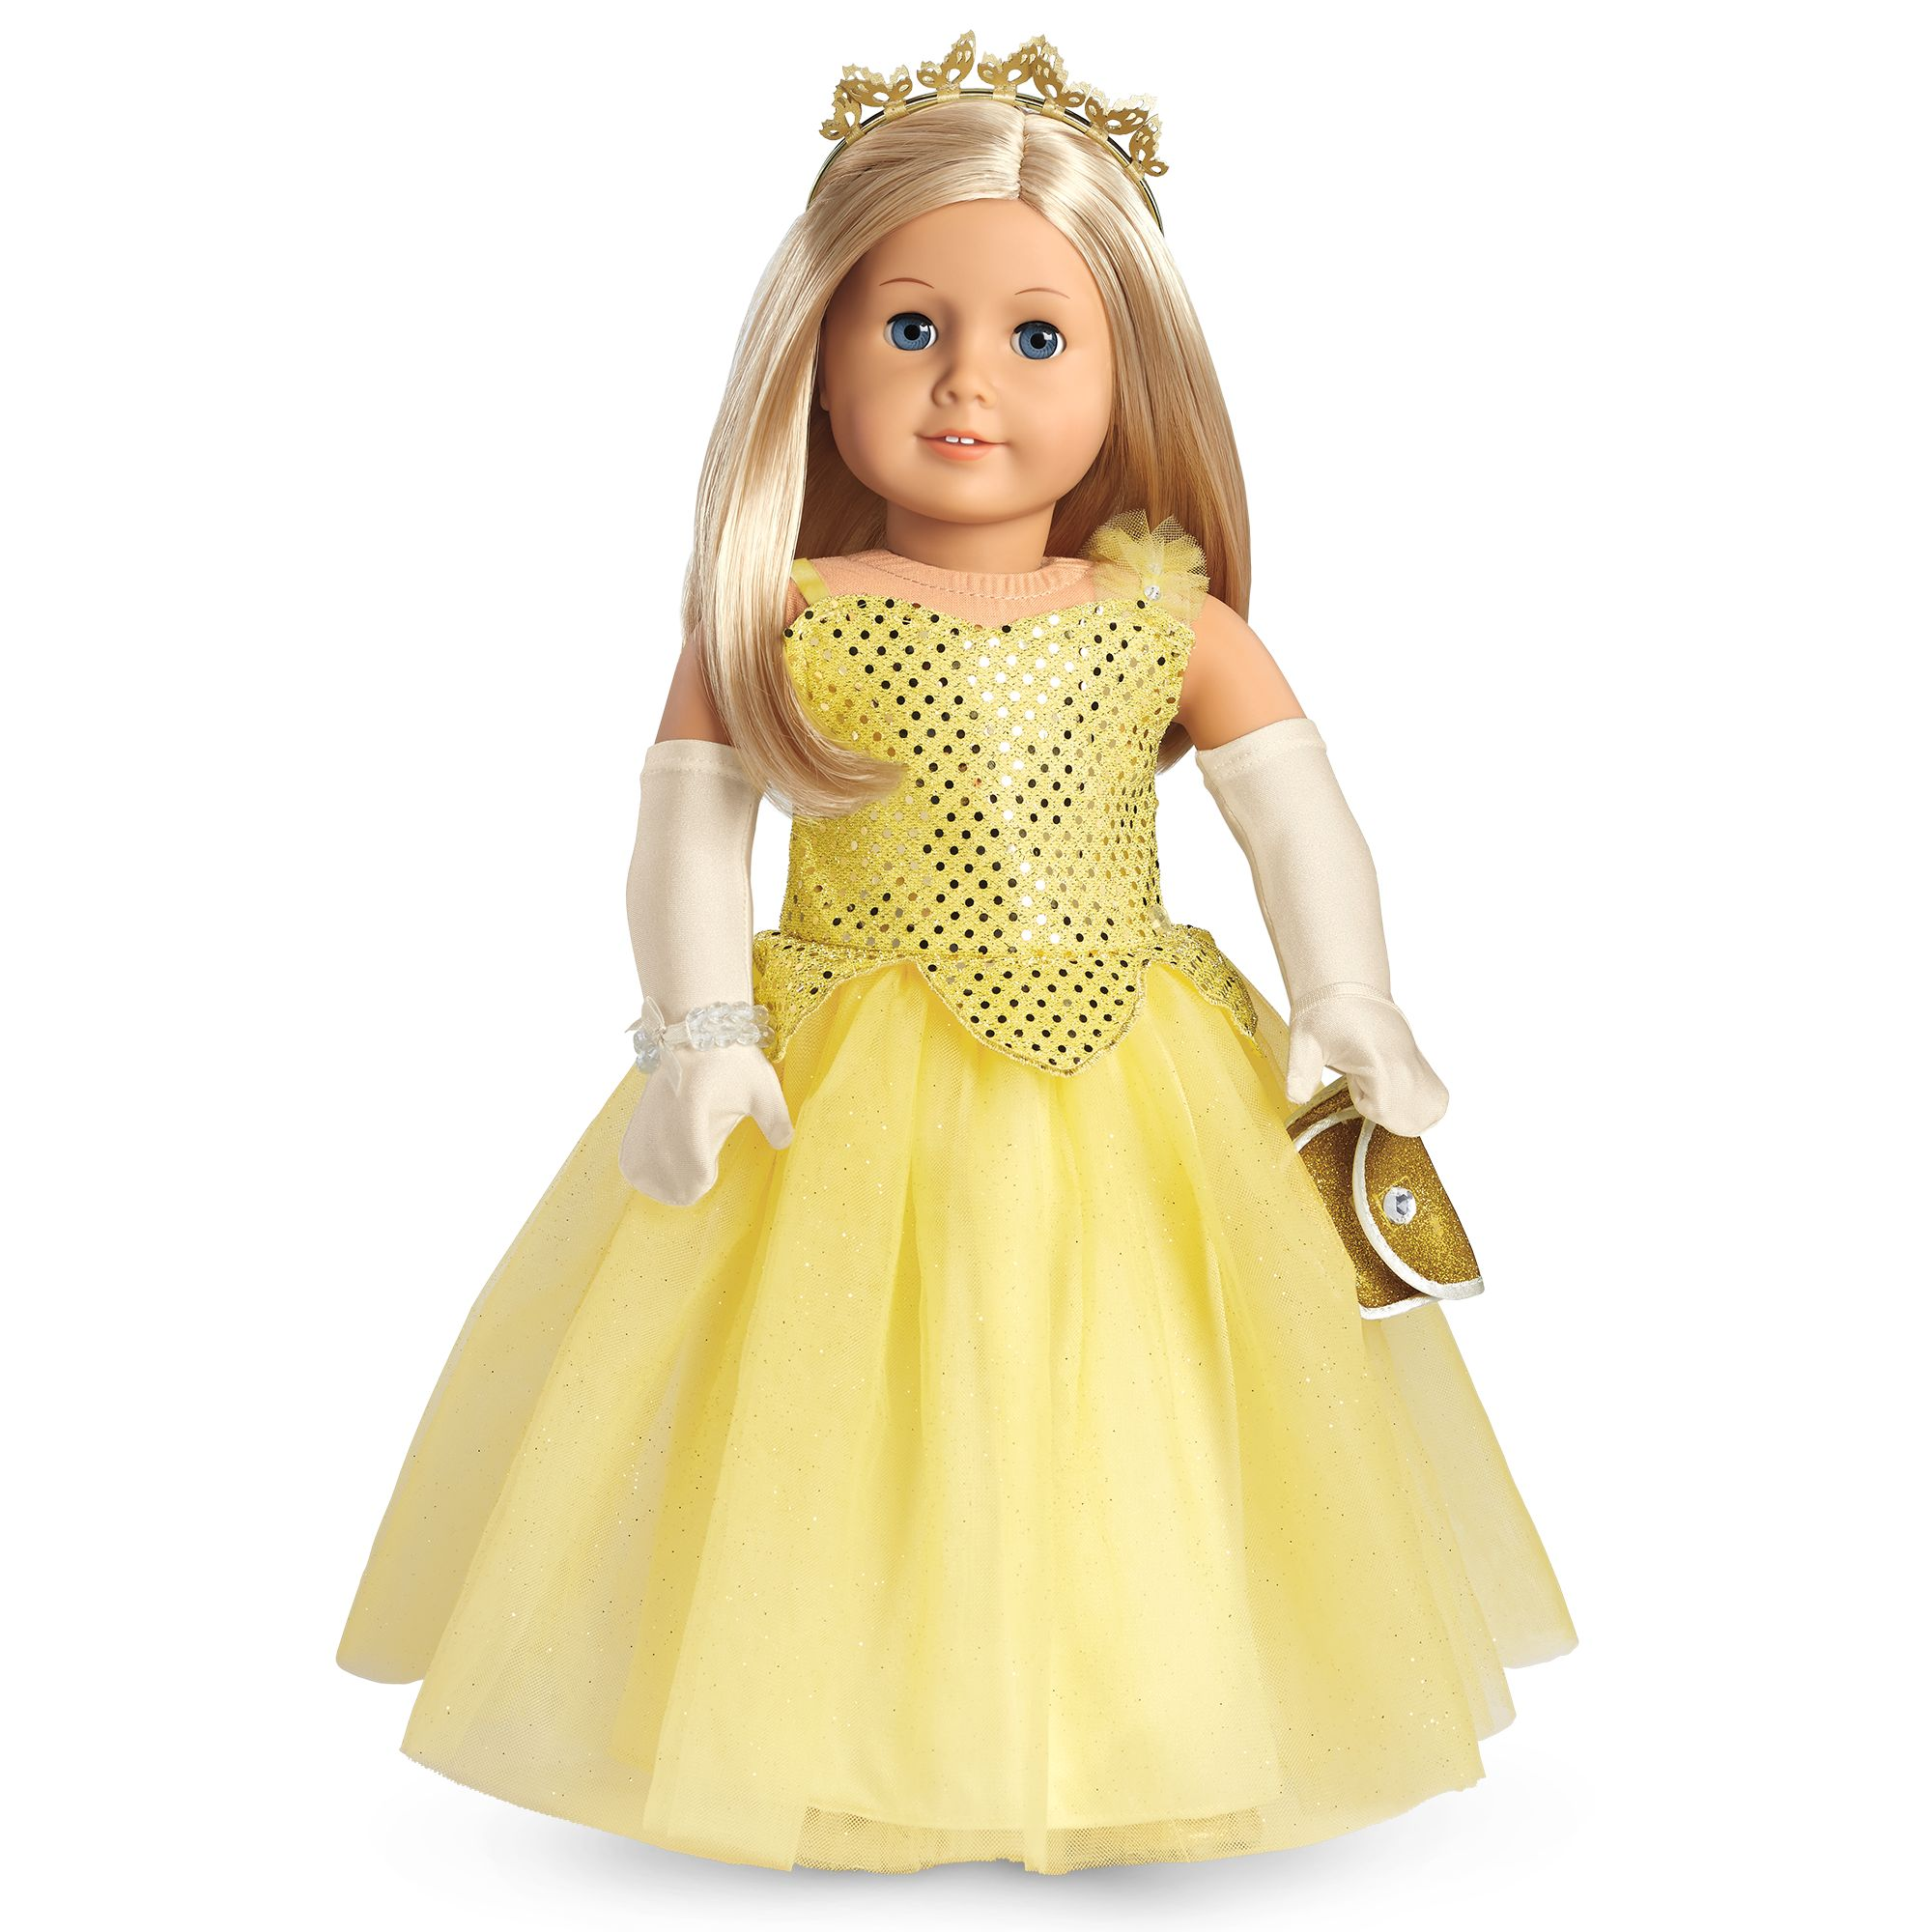 Shimmering Ballroom Gown | American Girl Wiki | FANDOM powered by Wikia